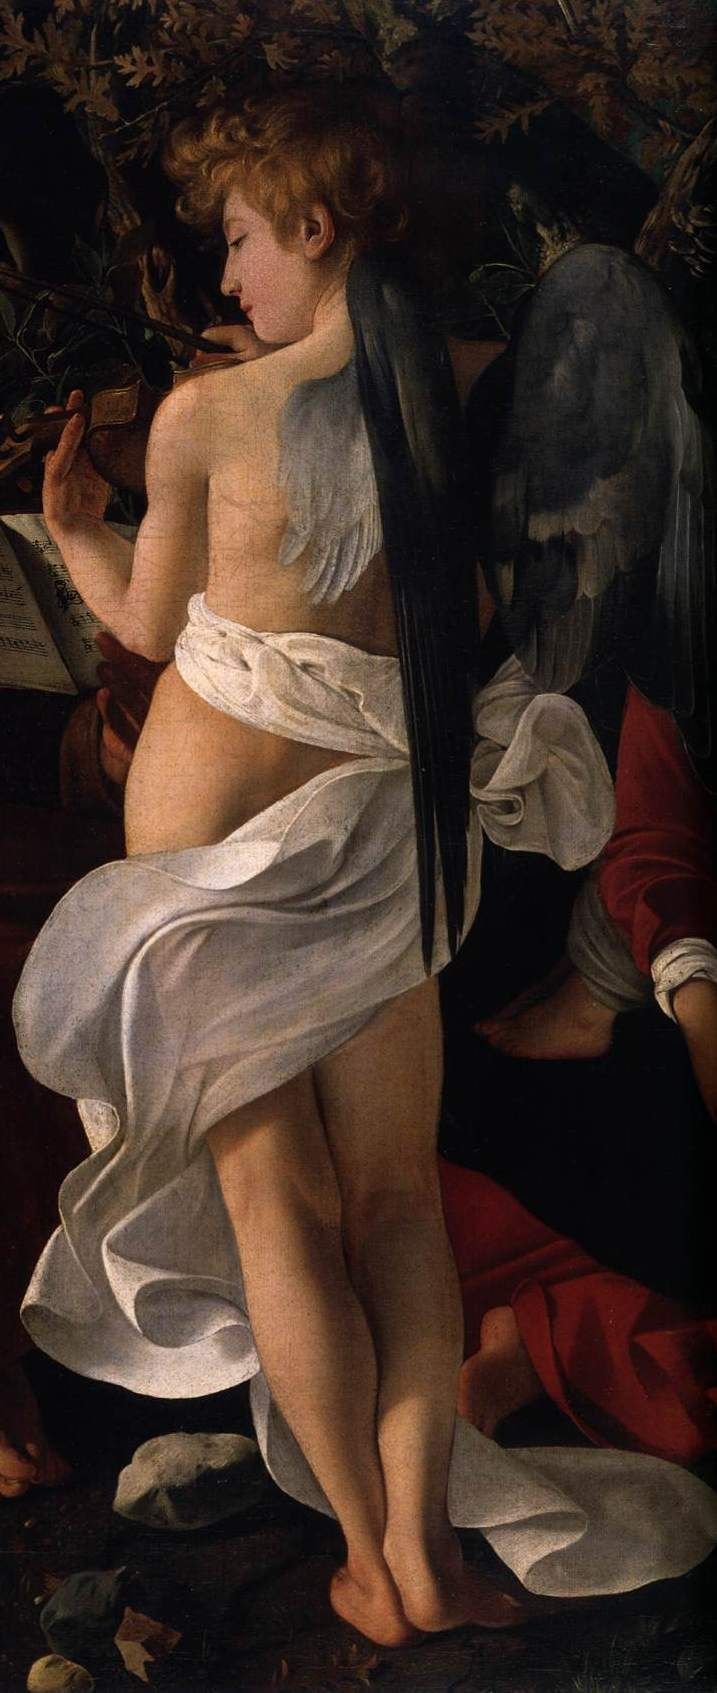 Caravaggio: Rest on the Flight into Egypt (c. 1597), detail